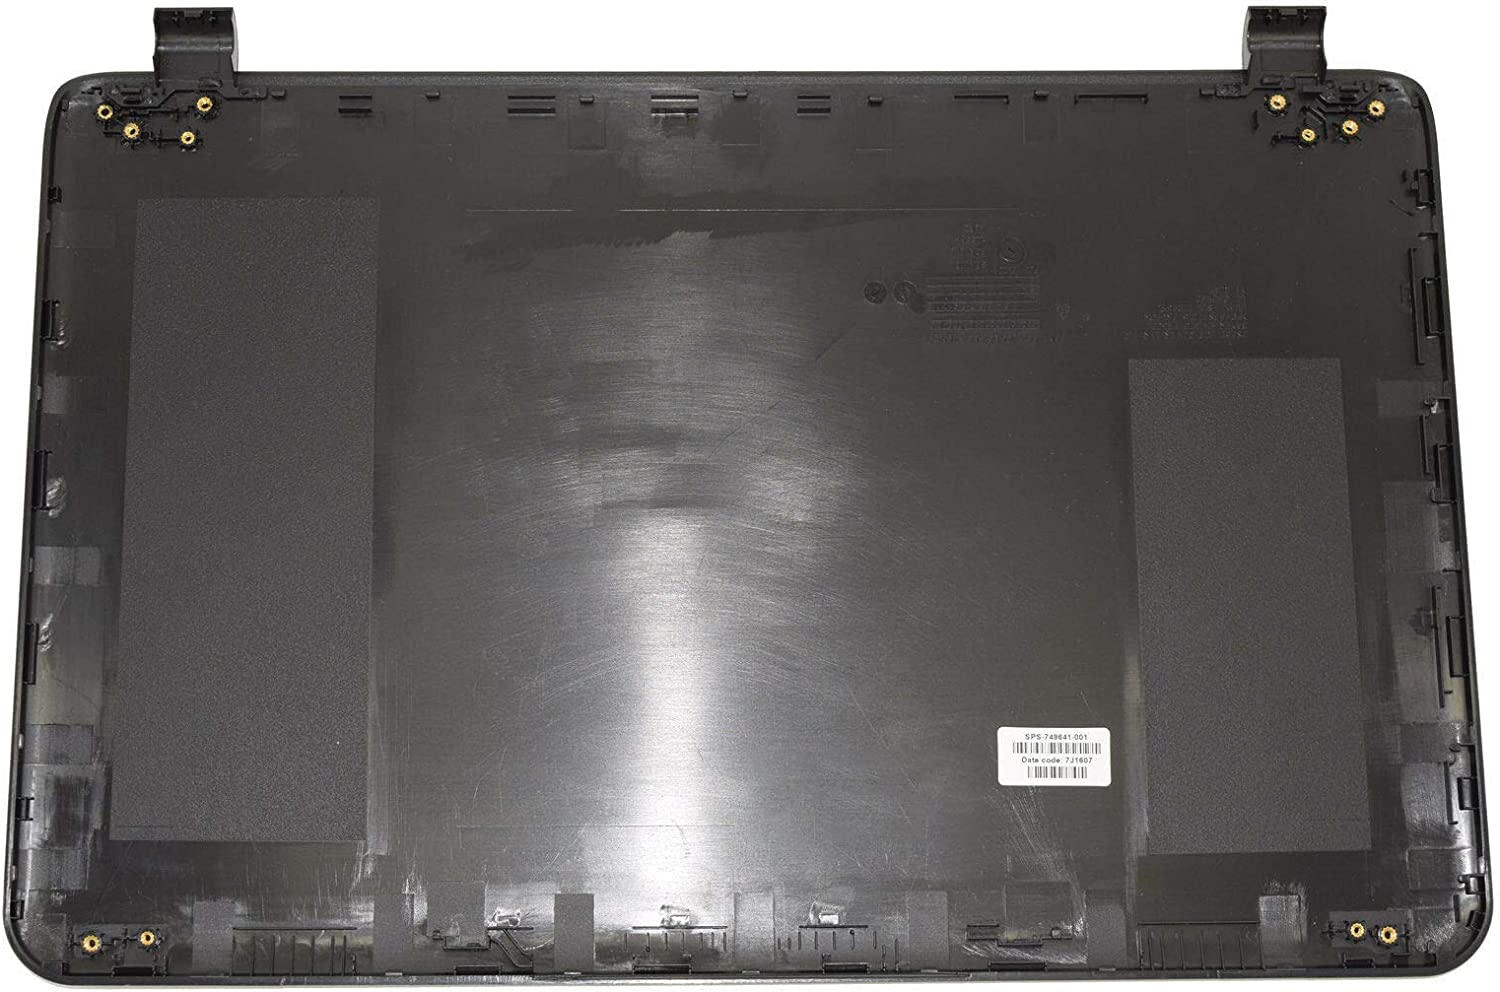 New Replacement for HP 15-R029WM 15-R018DX 15-R011DX LCD Back Cover Lid /& Bezel /& Hinges